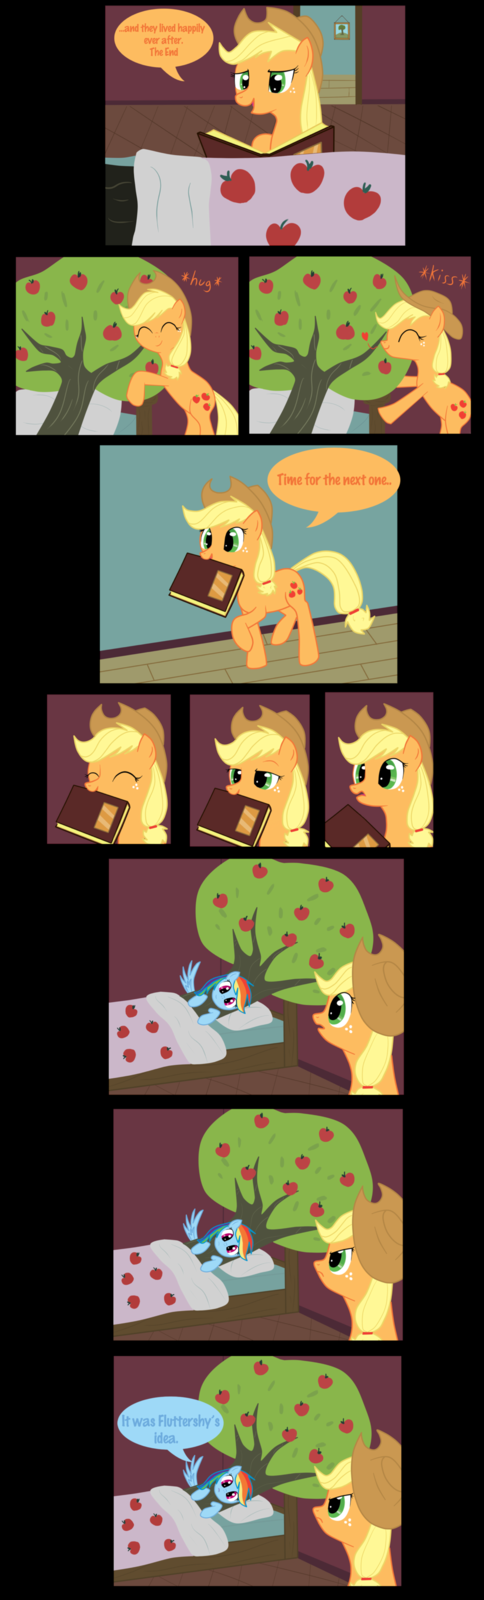 at_least_she_tried___by_kasun05-d3ddwp4.png